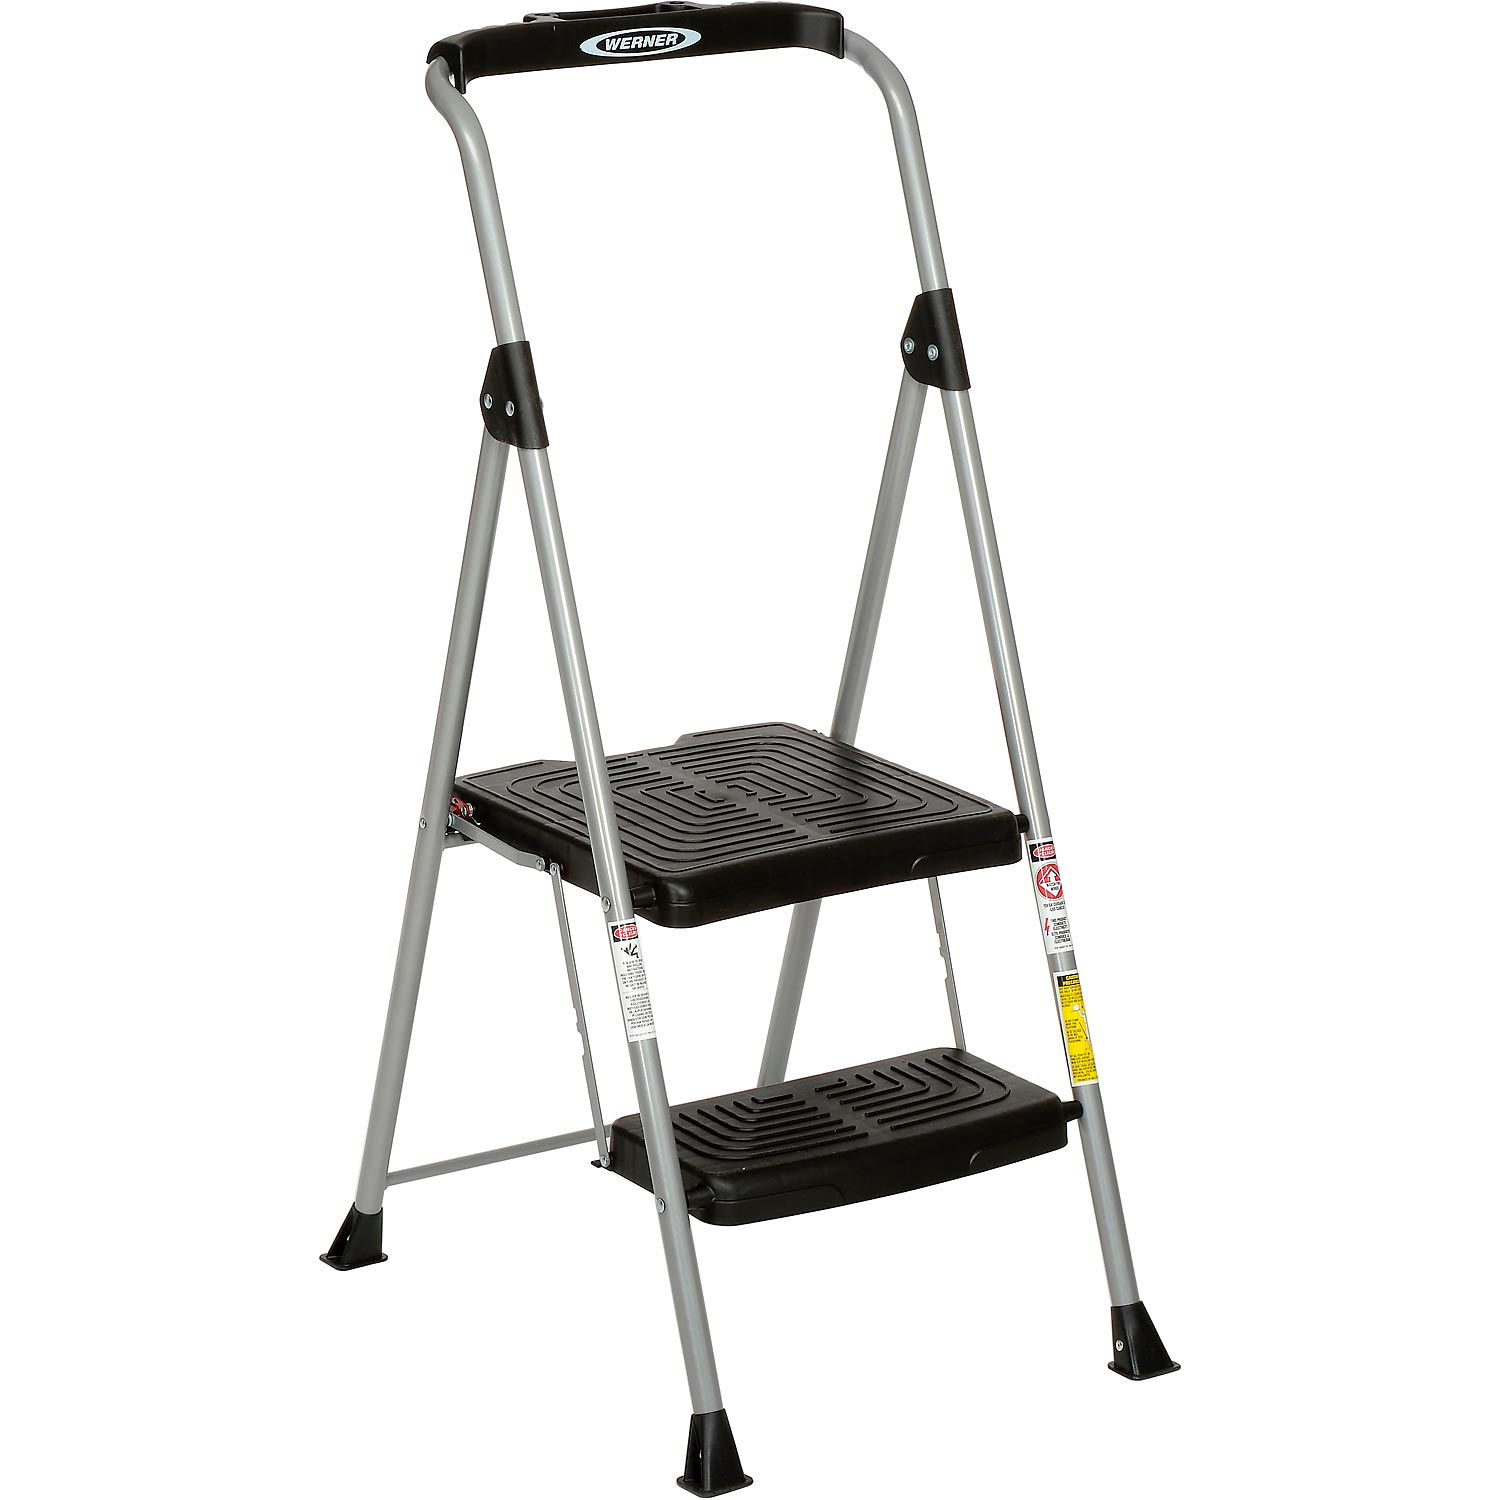 Fabulous Ladders Steel Step Ladders Werner 2 Step Steel Podium Onthecornerstone Fun Painted Chair Ideas Images Onthecornerstoneorg